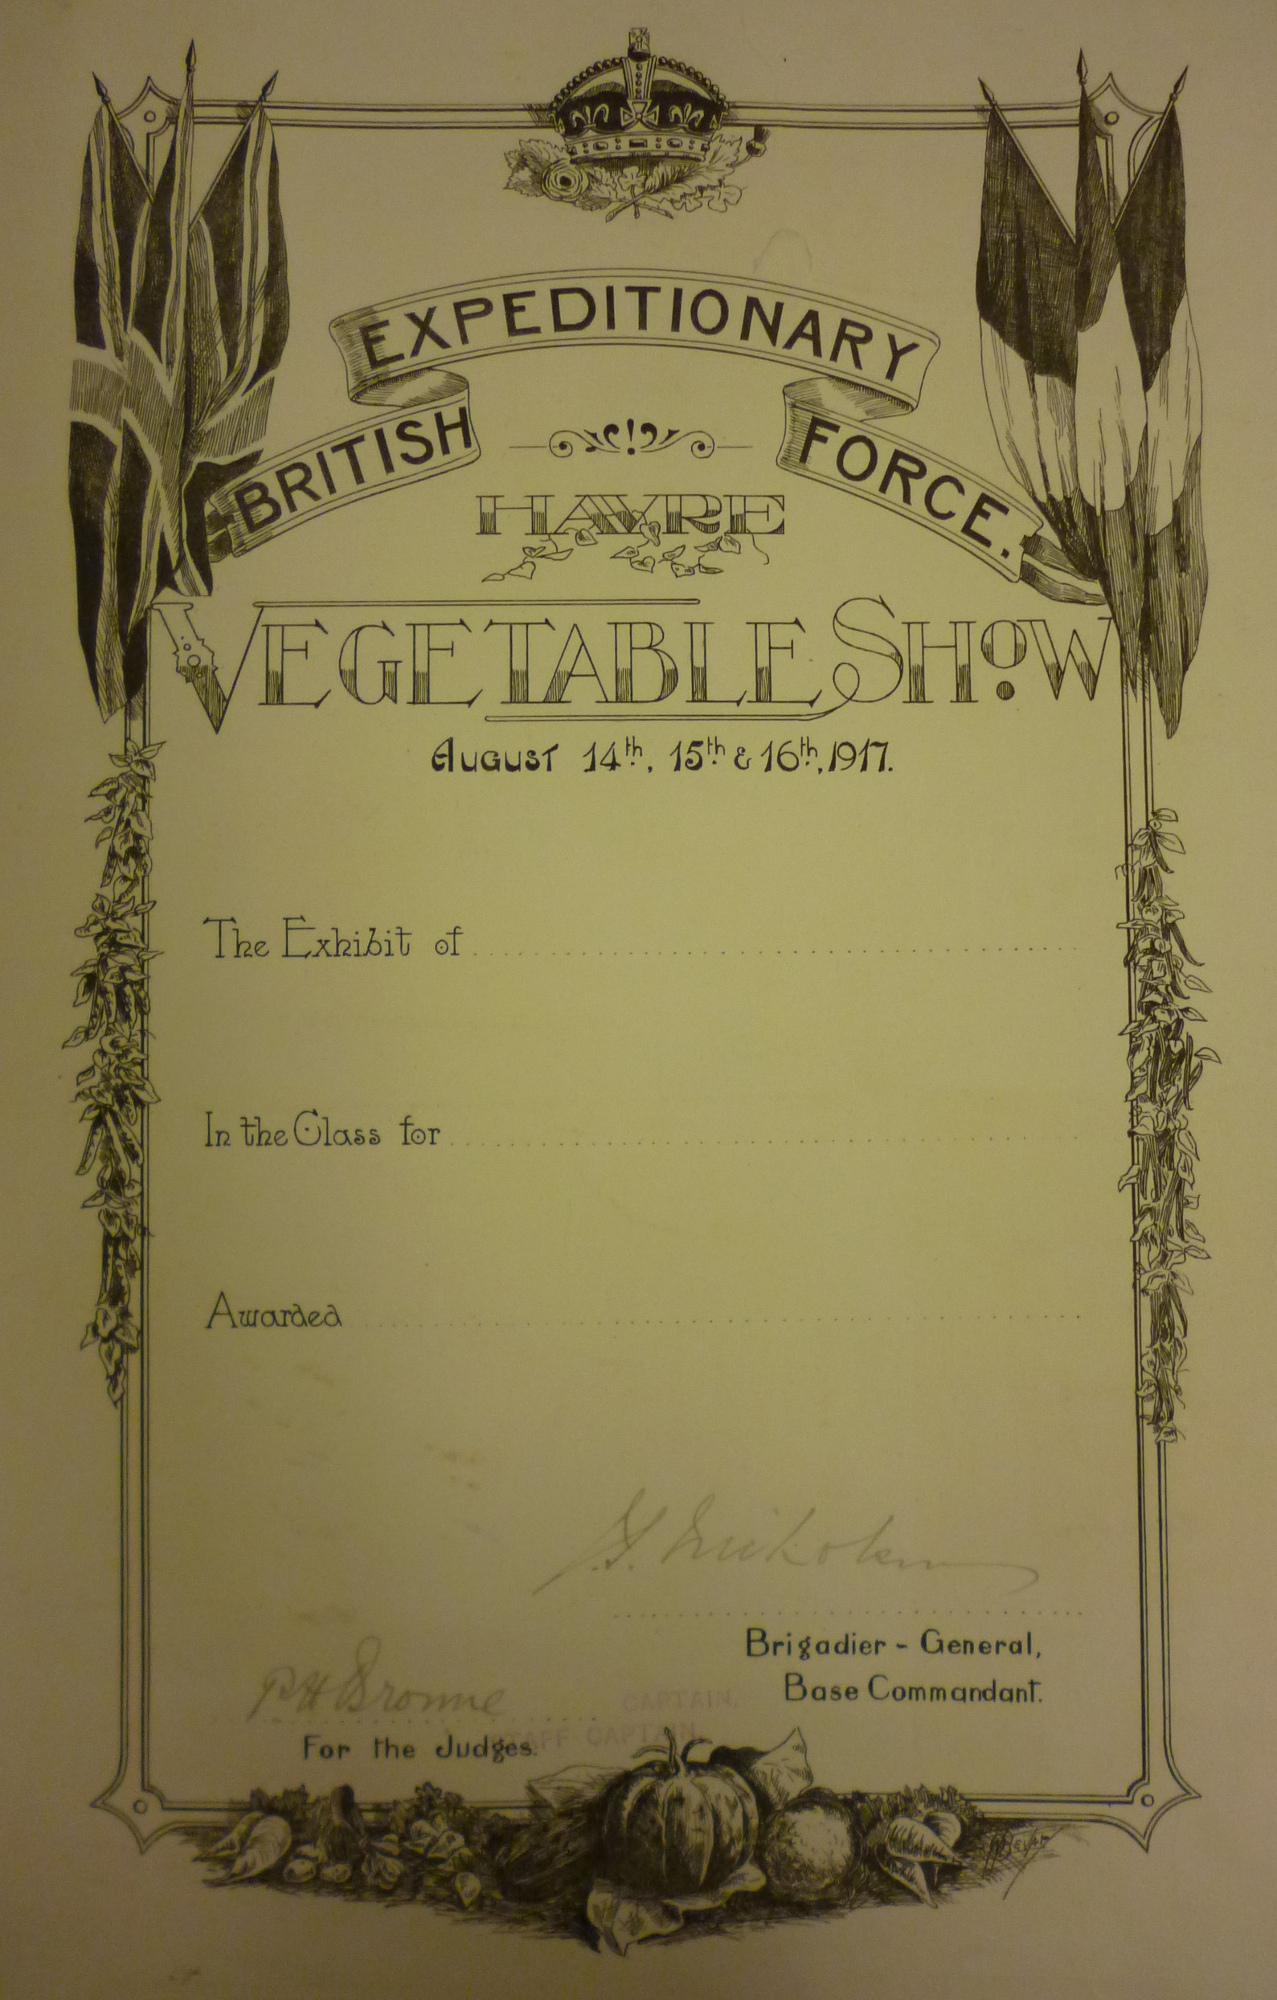 Le Havre Vegetable Show certificate